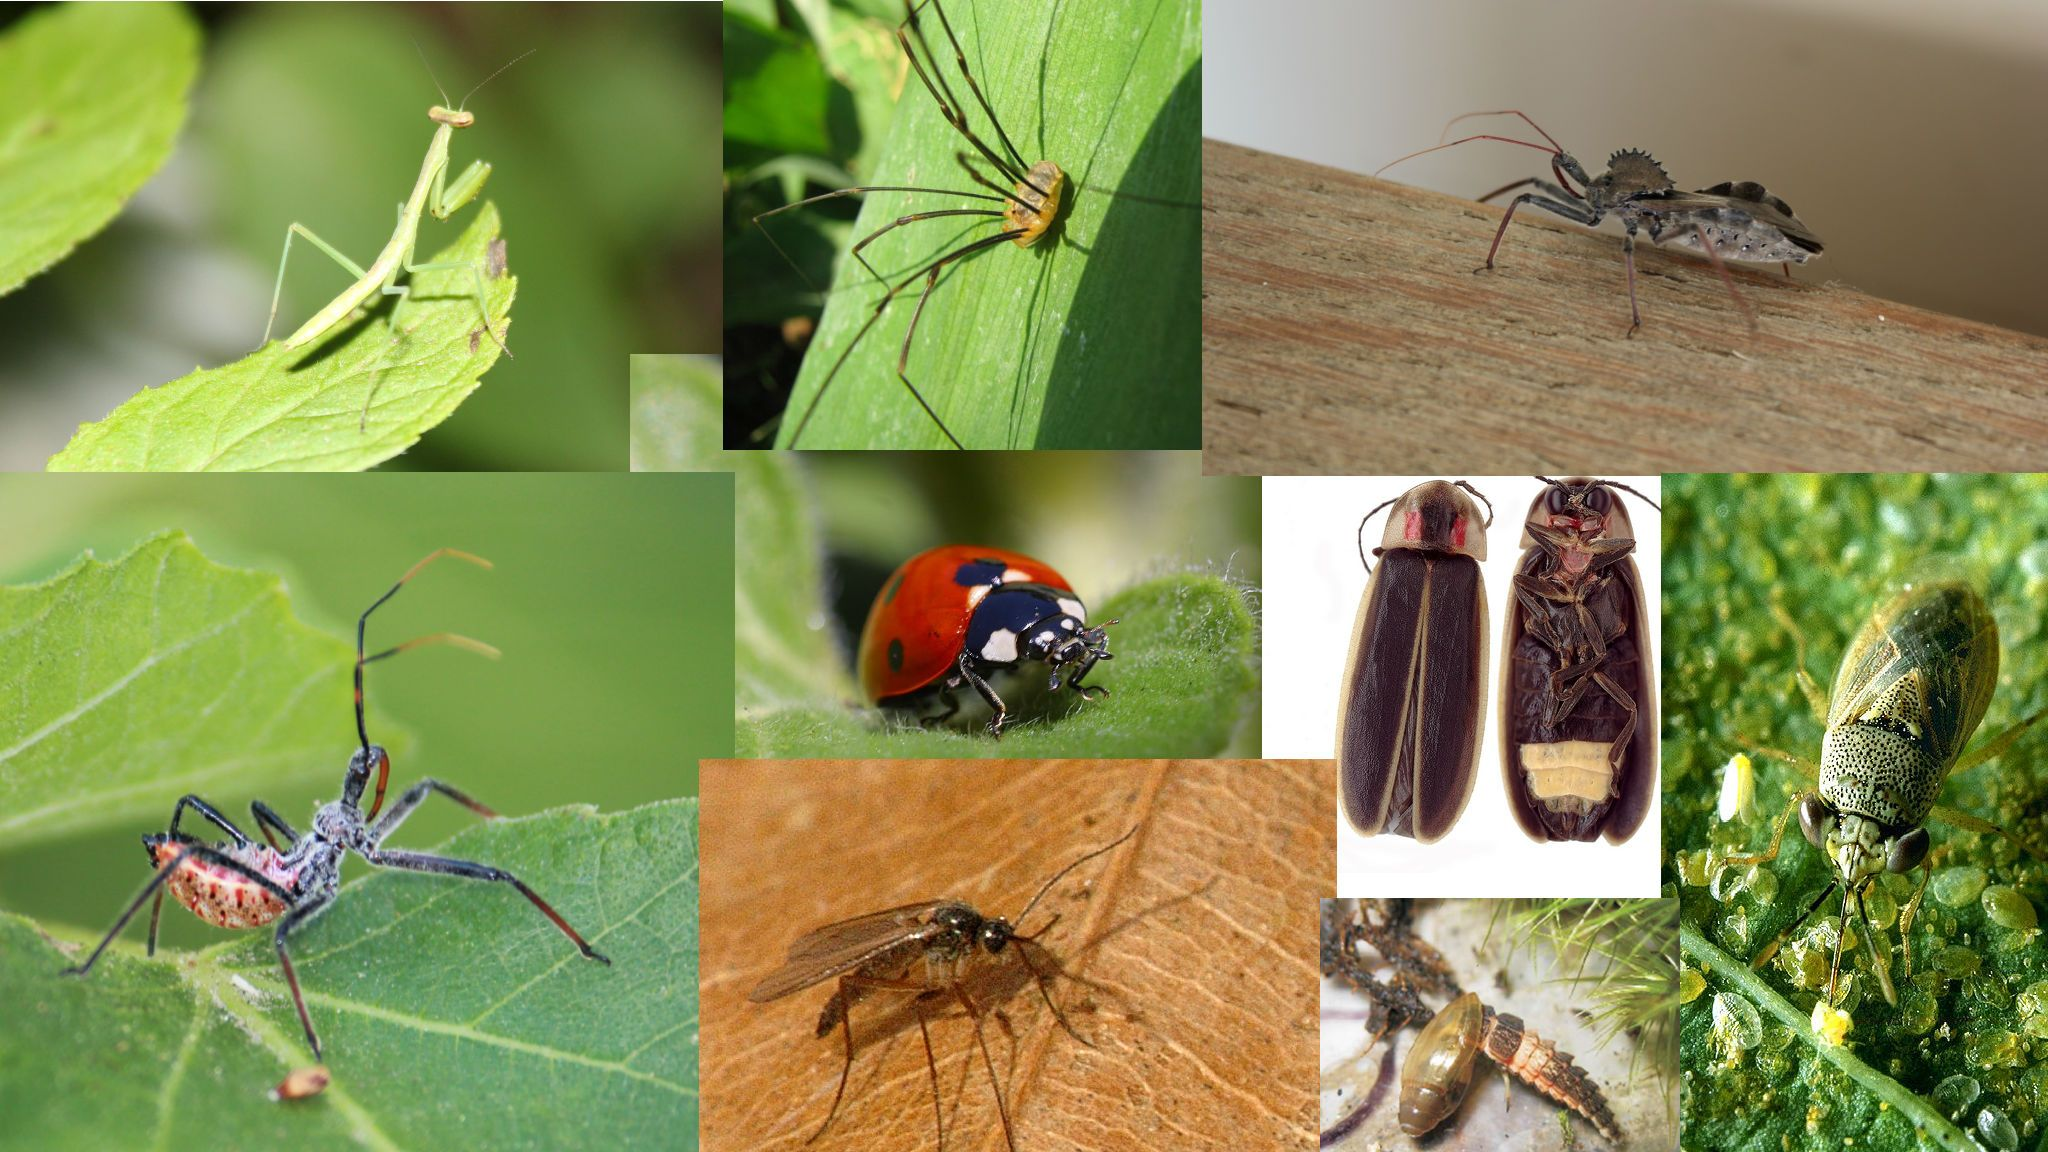 Online course all about learning to identify beneficial garden insects for pest control. Enter coupon code: HALFOFF to receive the course for half the original price. https://www.udemy.com/who-is-your-friend-beneficial-garden-bugs/?dtcode=VoHV9HG2HJ4X